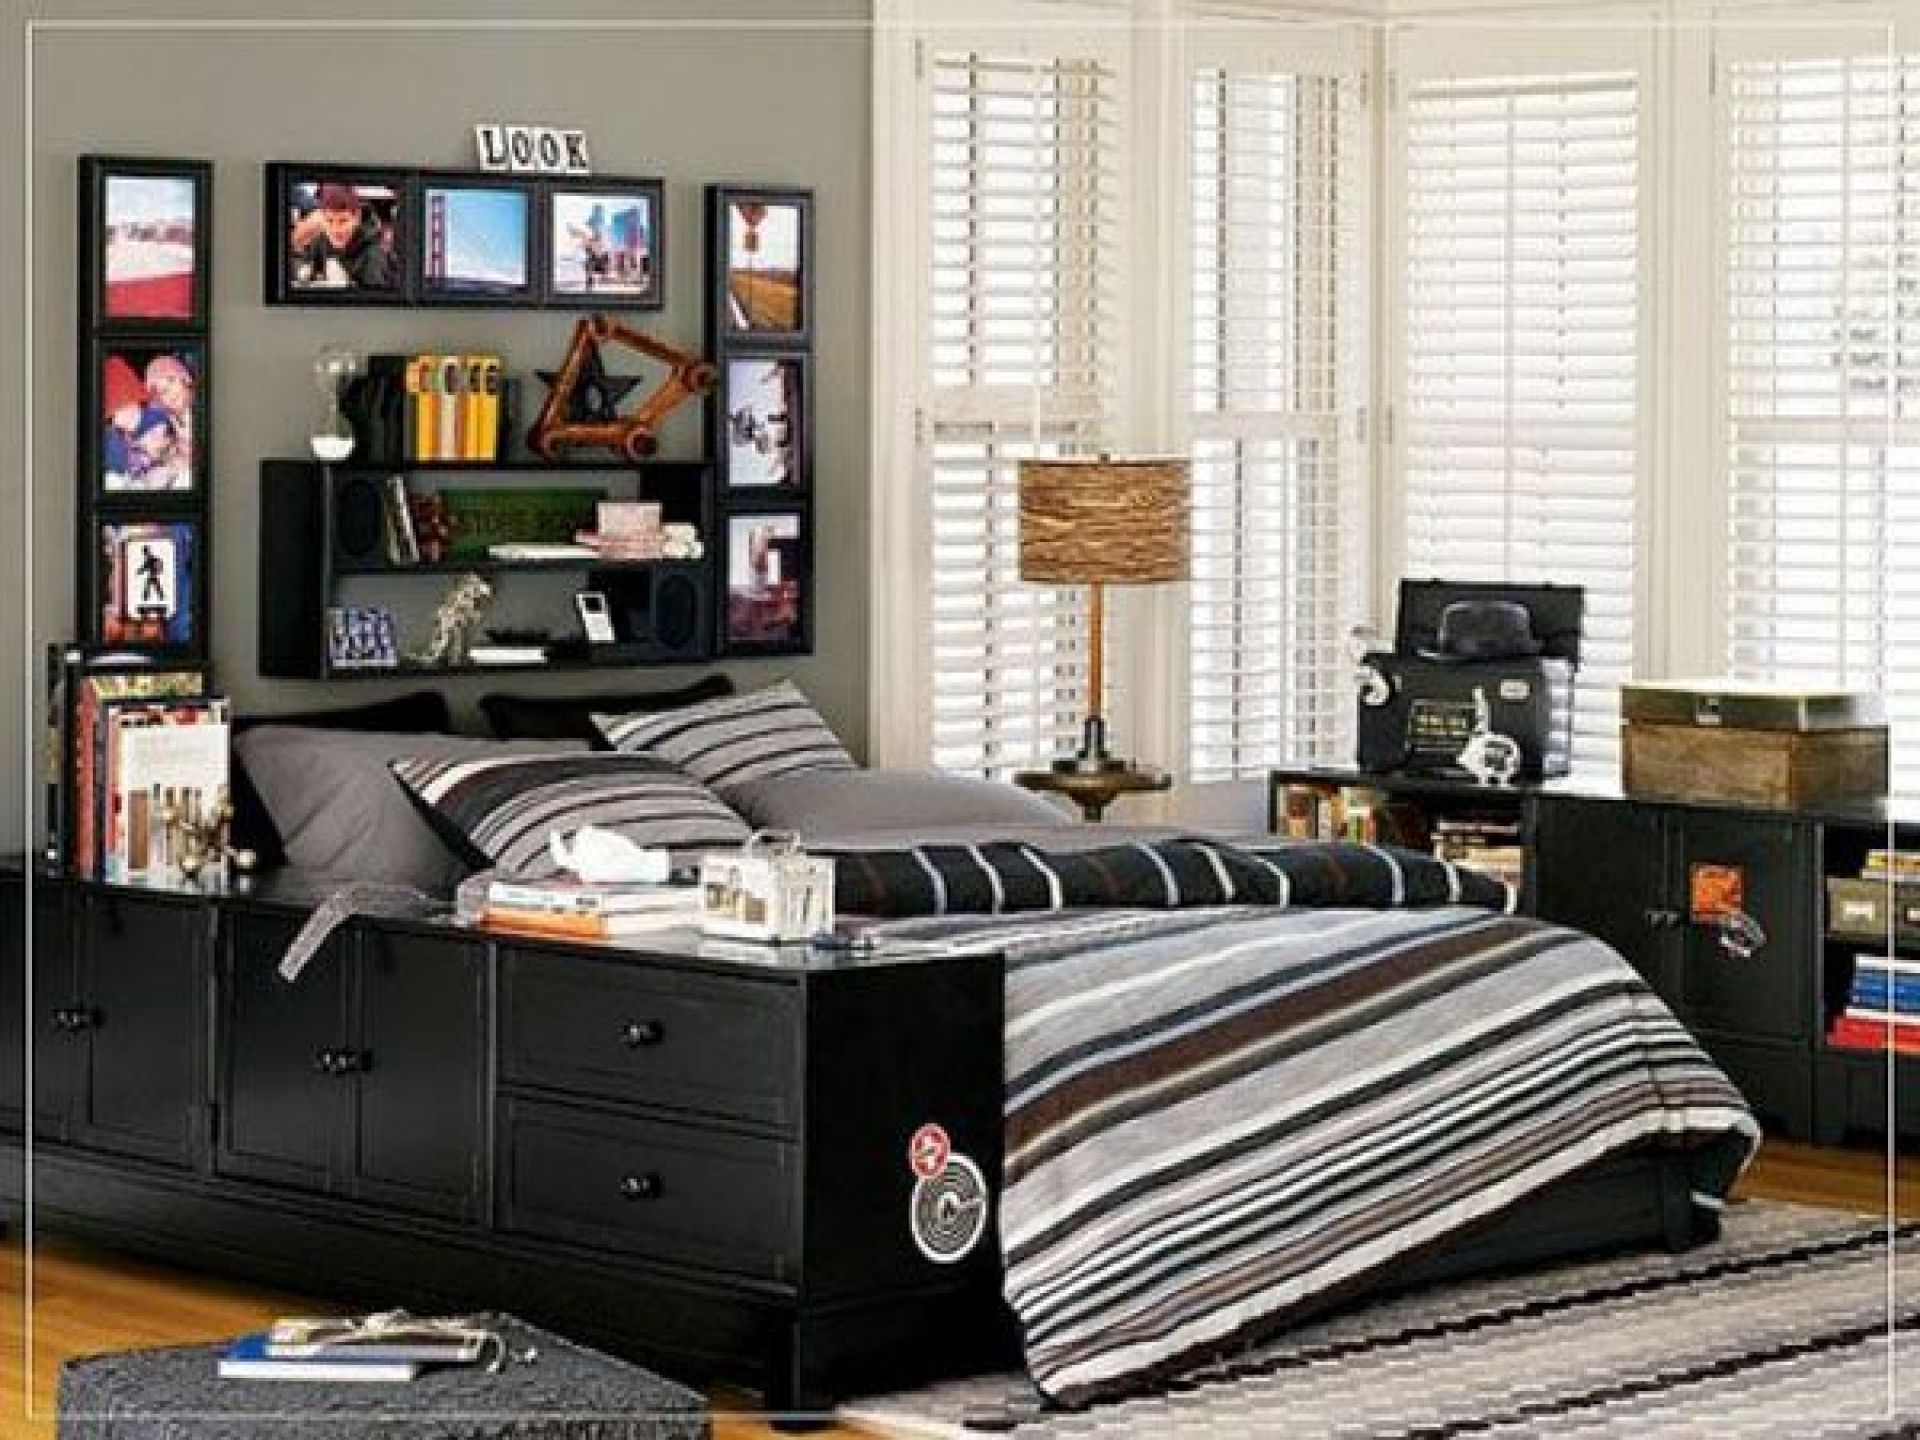 Cool Room Ideas For Teenagers Inspiration Bedroom Ideas For Teenage Guys With Small Rooms  Google Search . Review